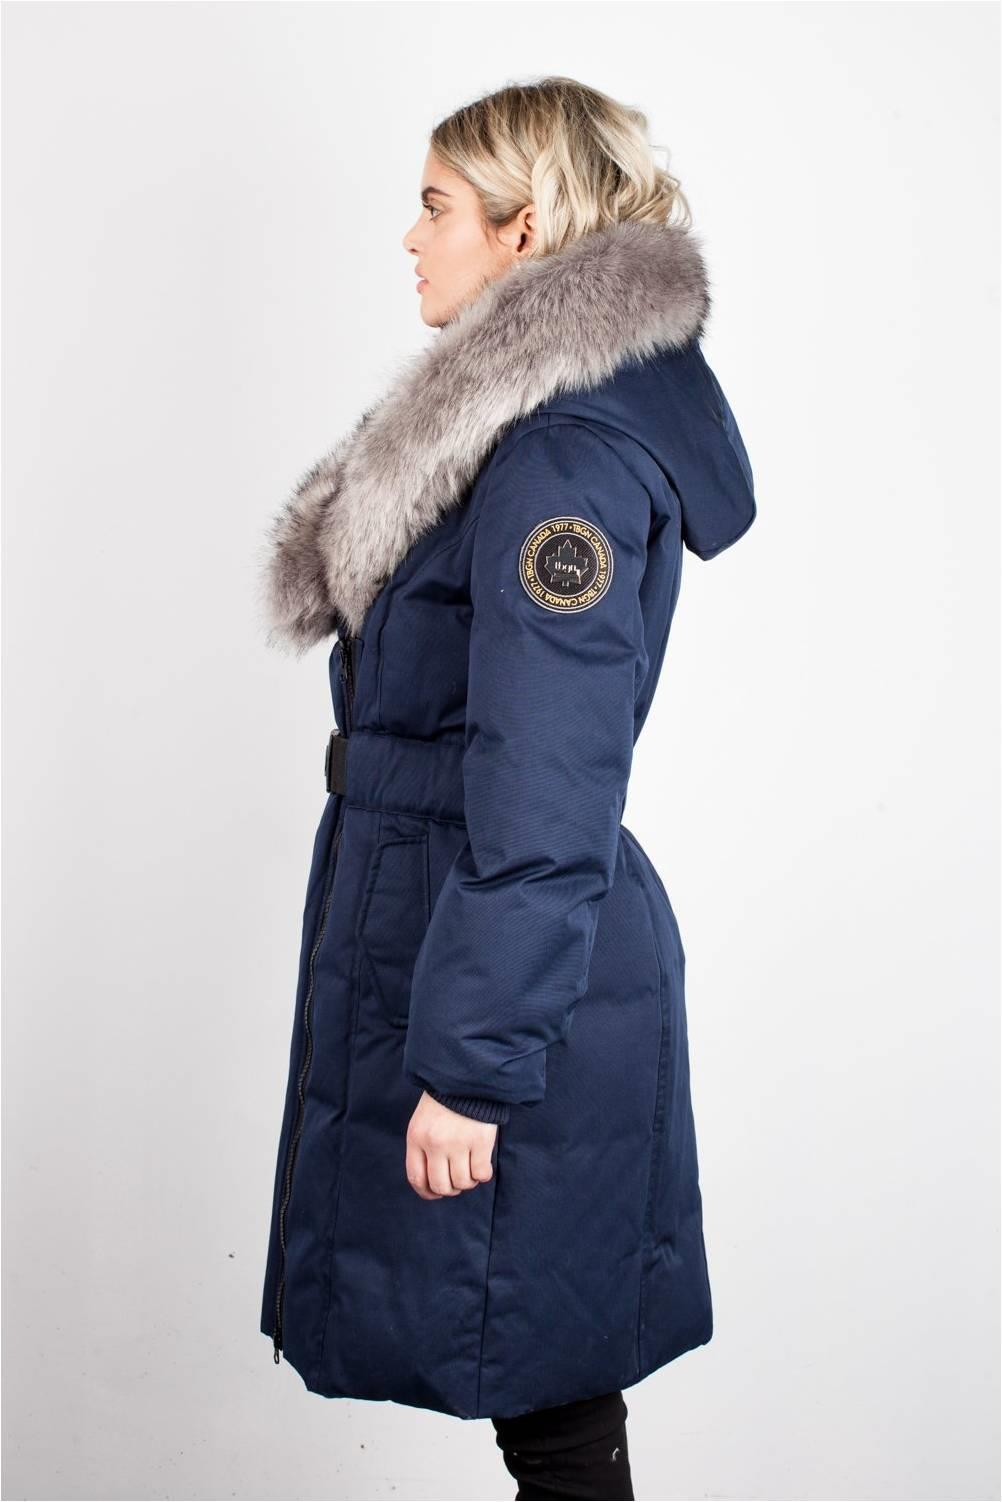 TBGGN EVA B LONG NAVY SWEETHEART DOWN JACKET